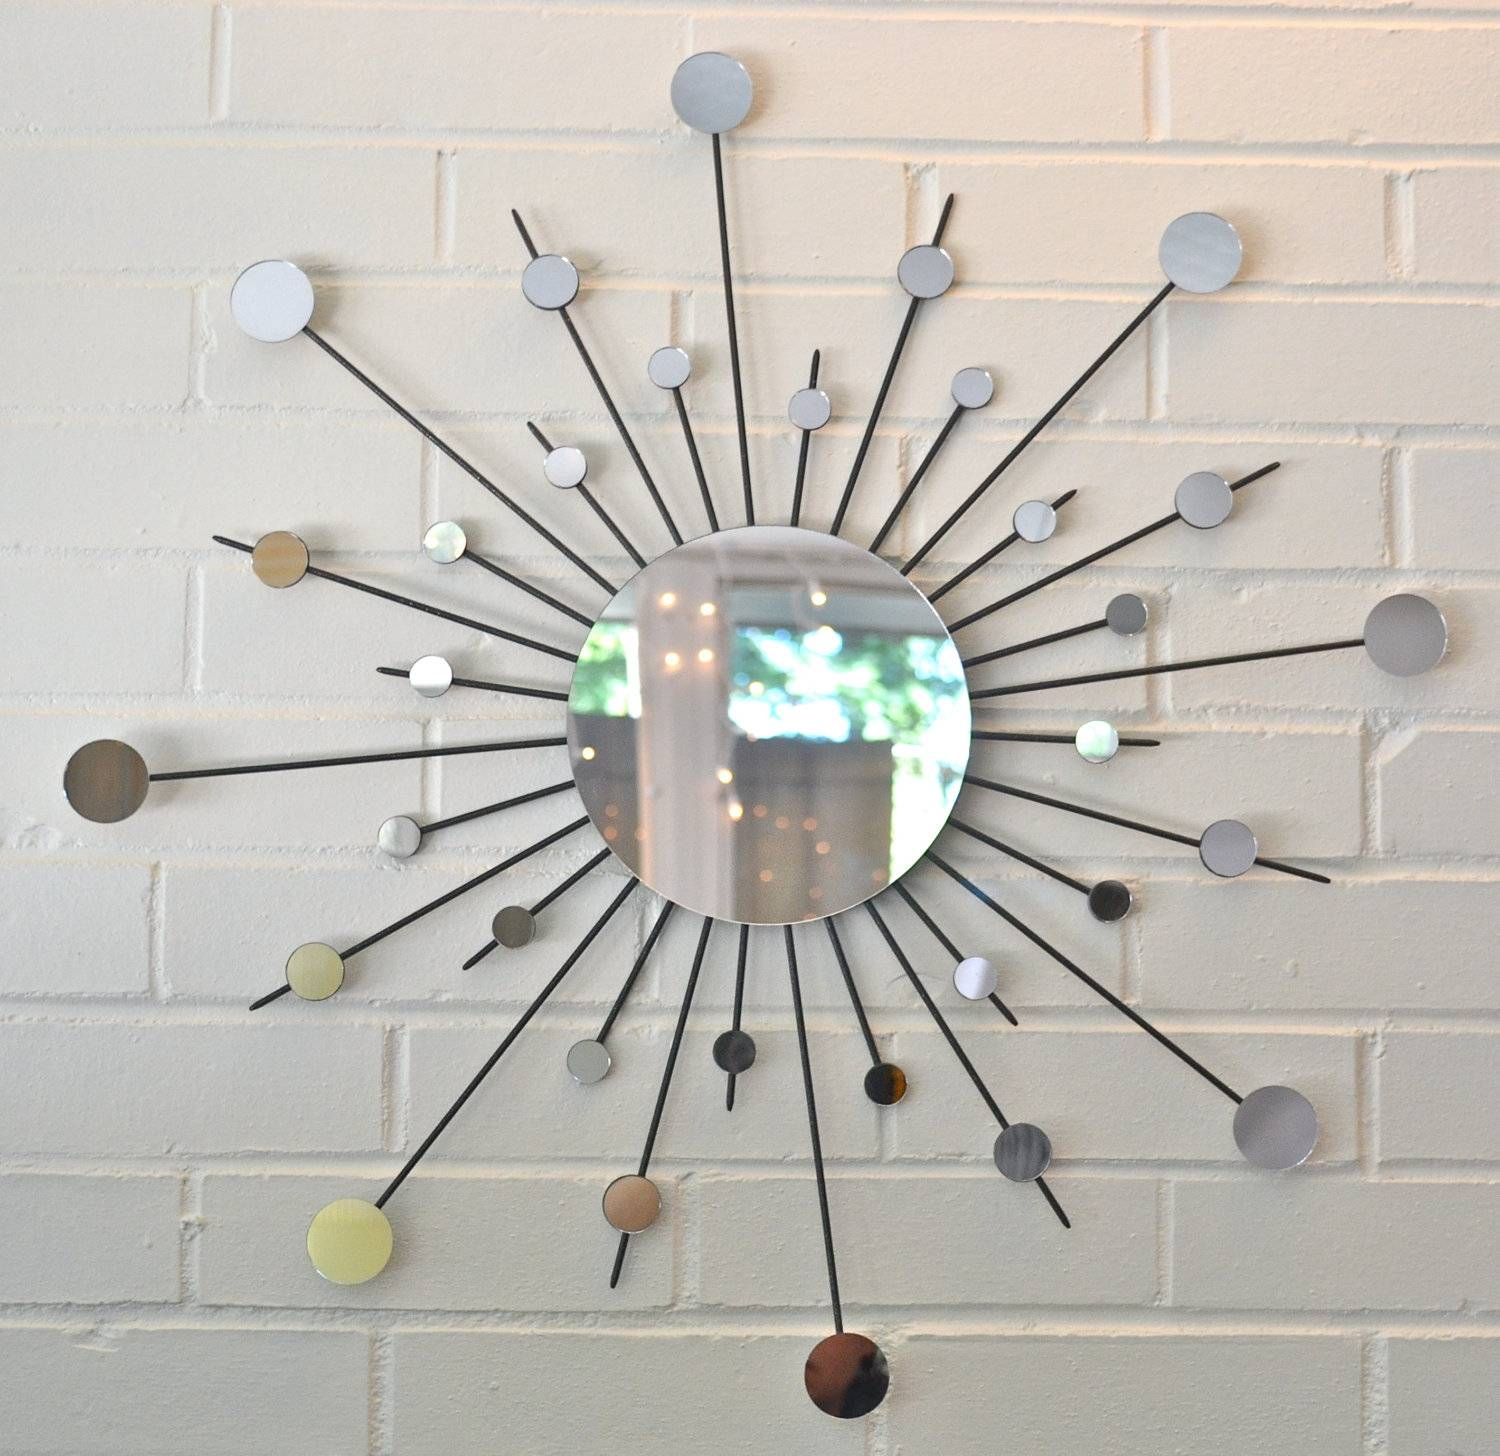 Wall Art Designs: Mirror Wall Art Luxury And Stylish Modern Wall Inside Current Modern Mirrored Wall Art (View 16 of 20)